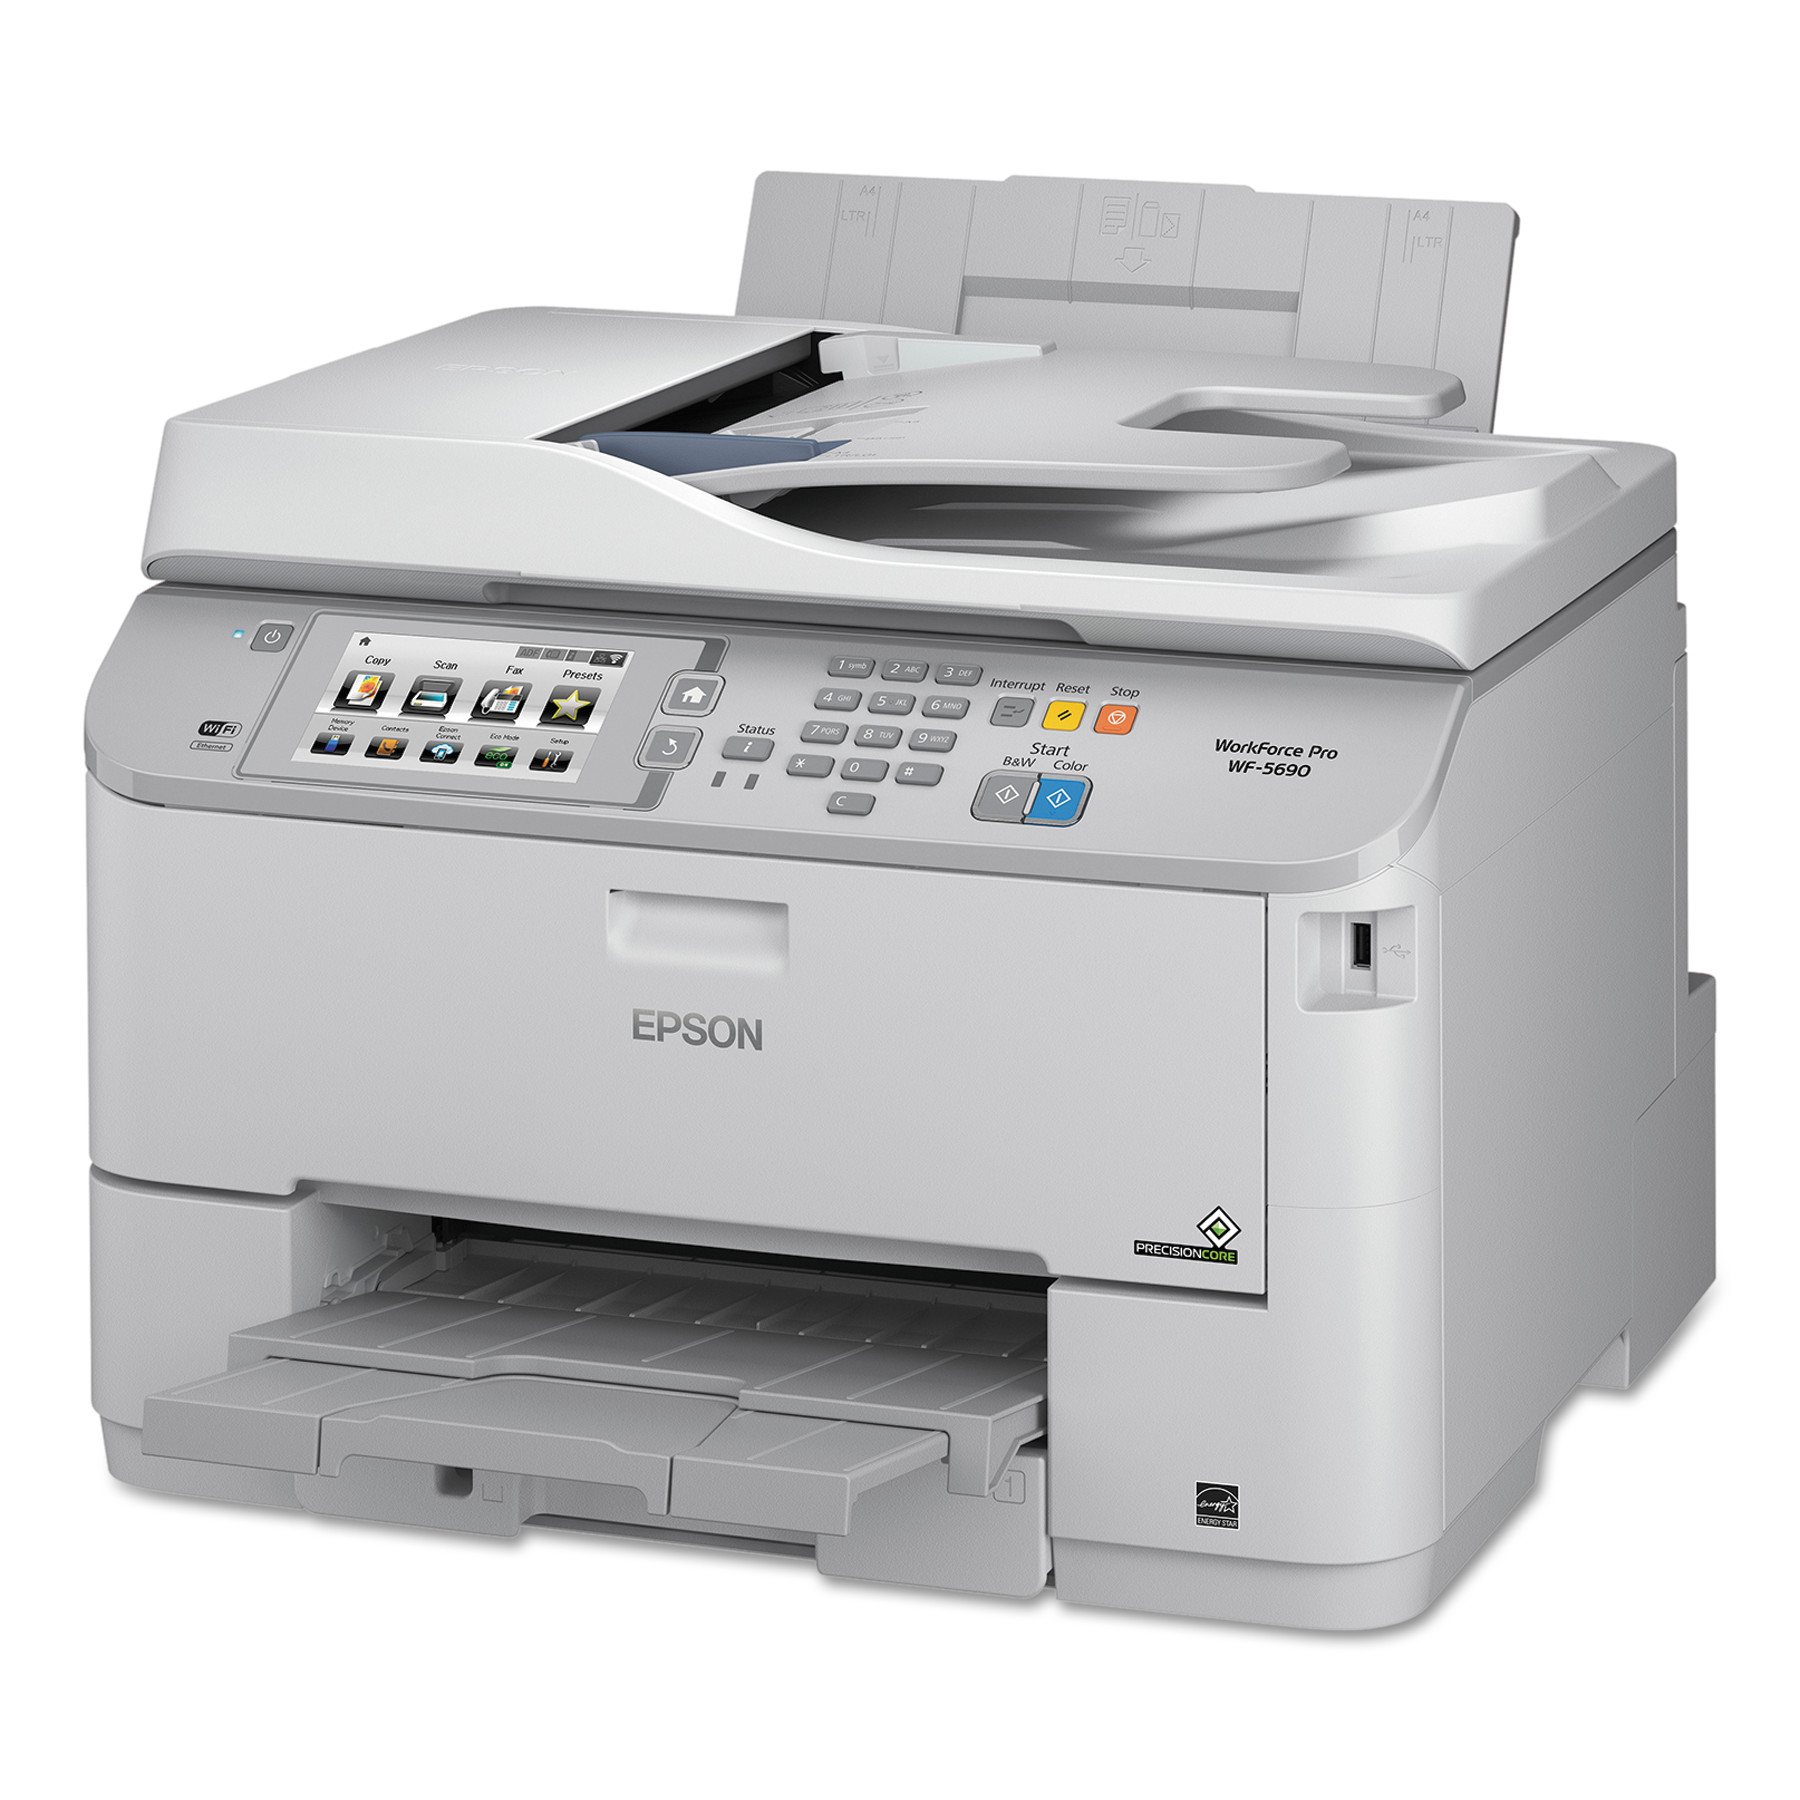 Epson WorkForce Pro WF-5690 Wireless Multifunction Printer, Copy Fax Print Scan by Epson